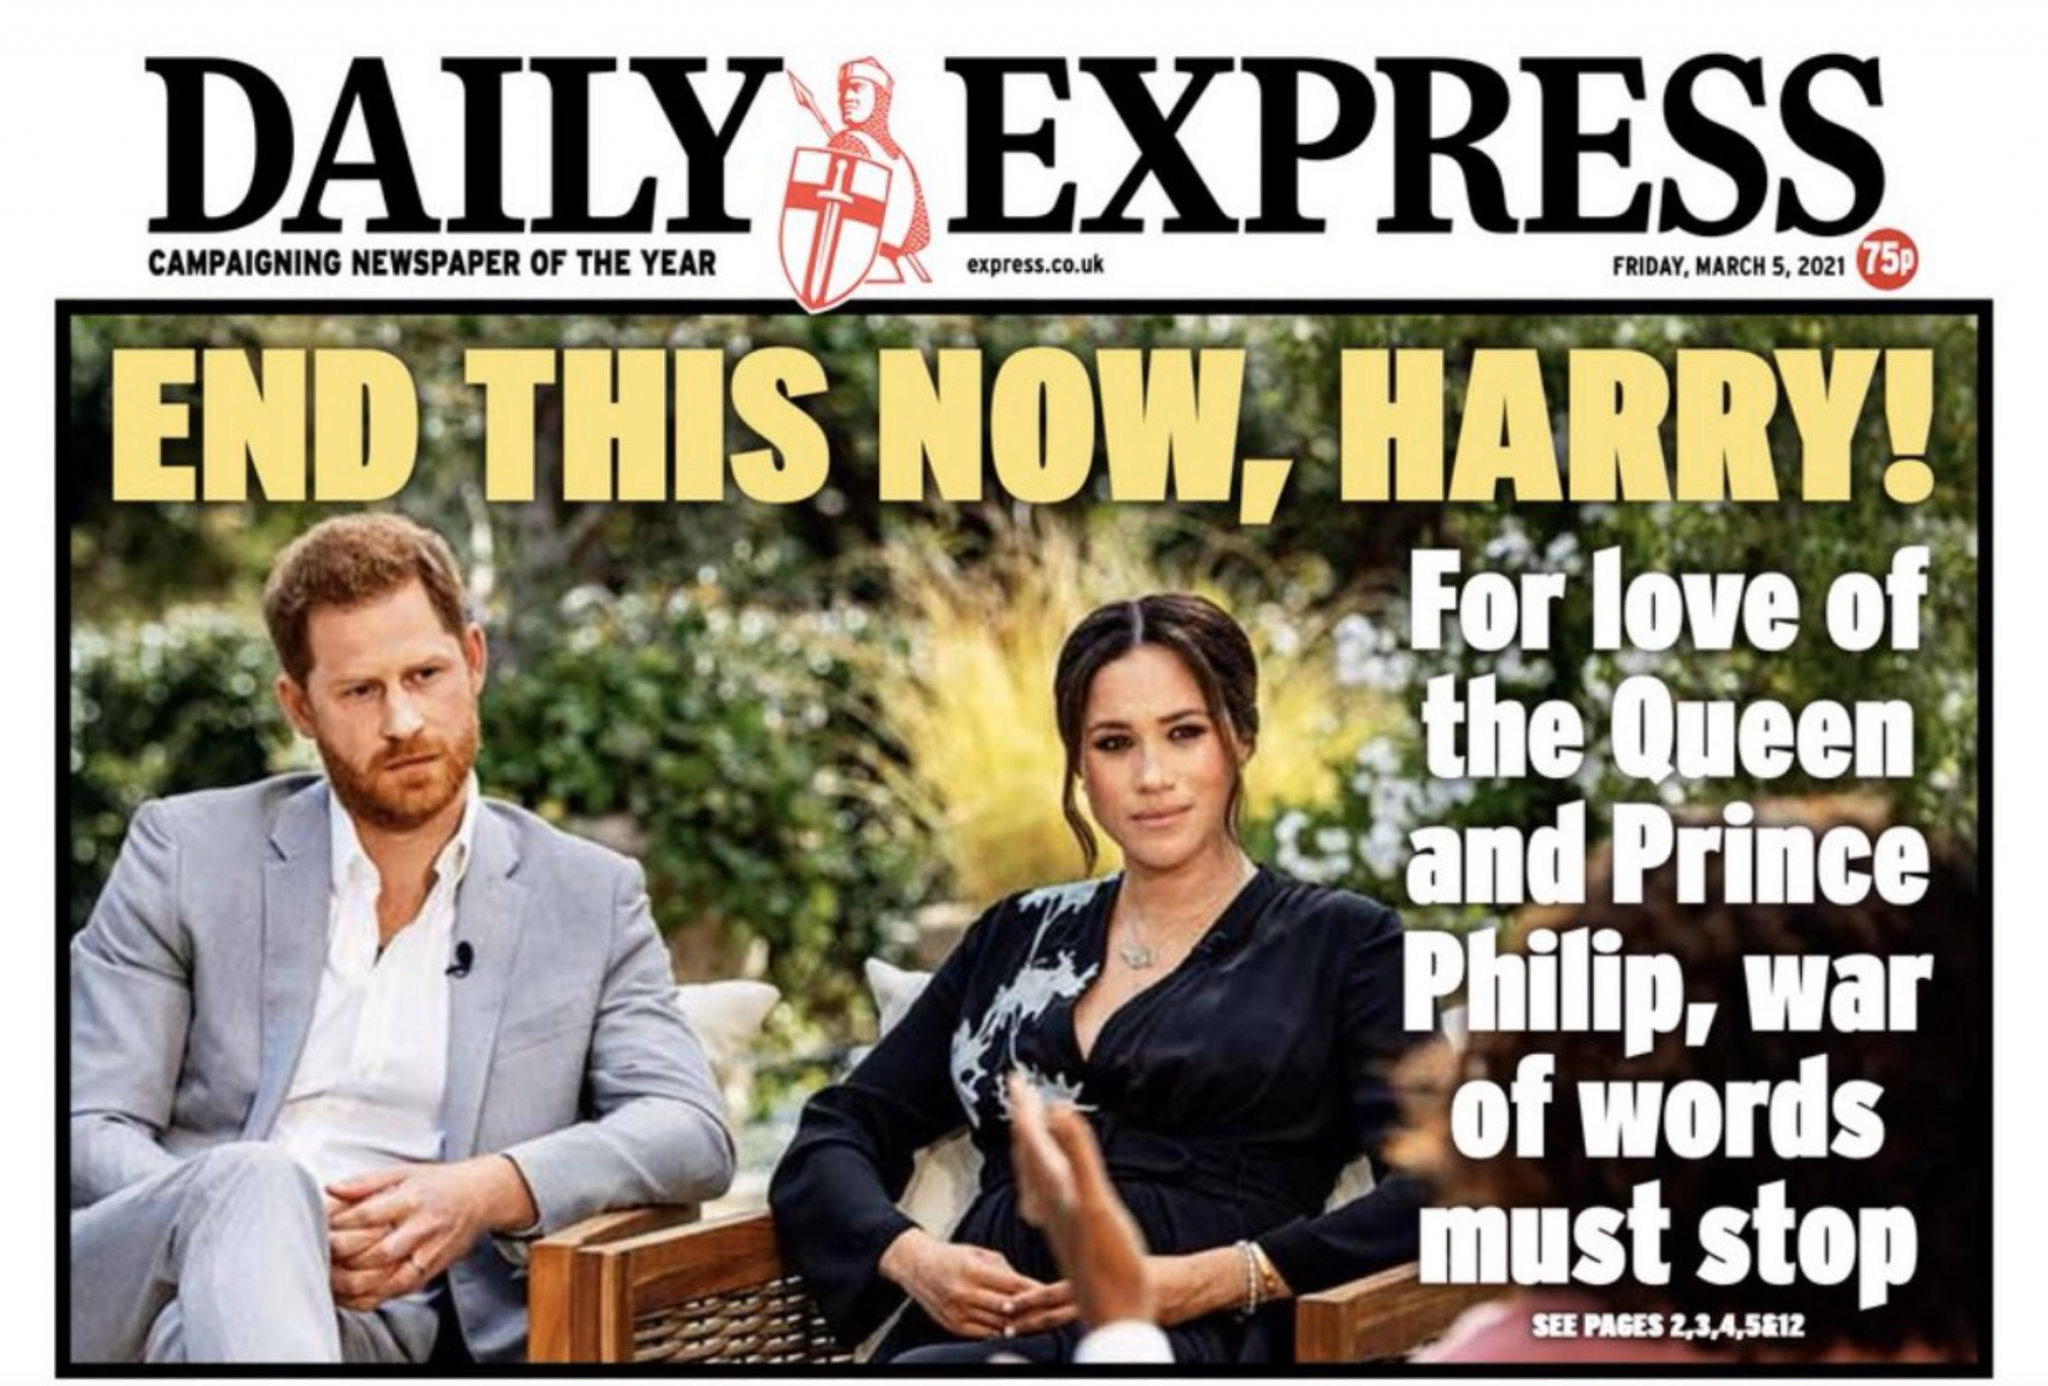 """Daily Express front page reading: """"End this now, Harry! For the love of the Queen and Prince Philip, the war of words must stop"""""""